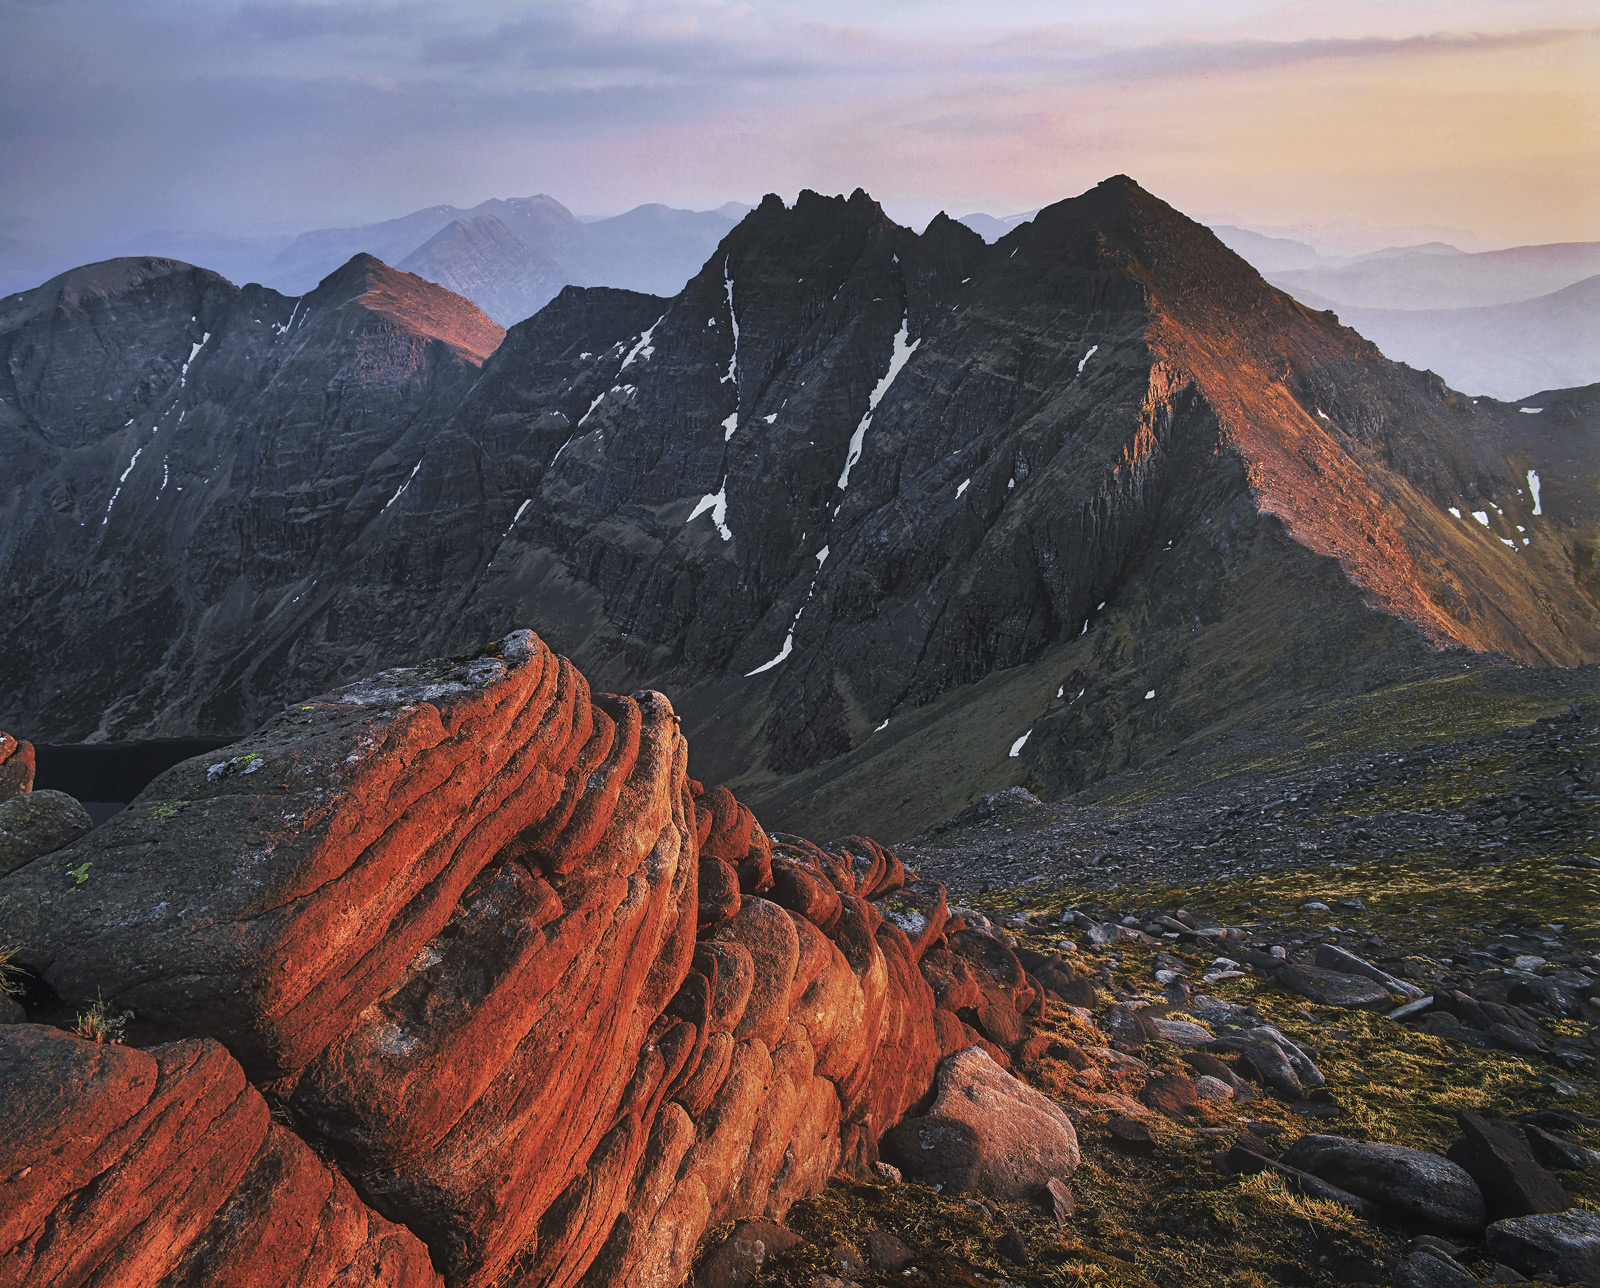 With out a doubt the most breathtaking ridge walk in Scotland. The climb up to the summit is actually quite dull but the...